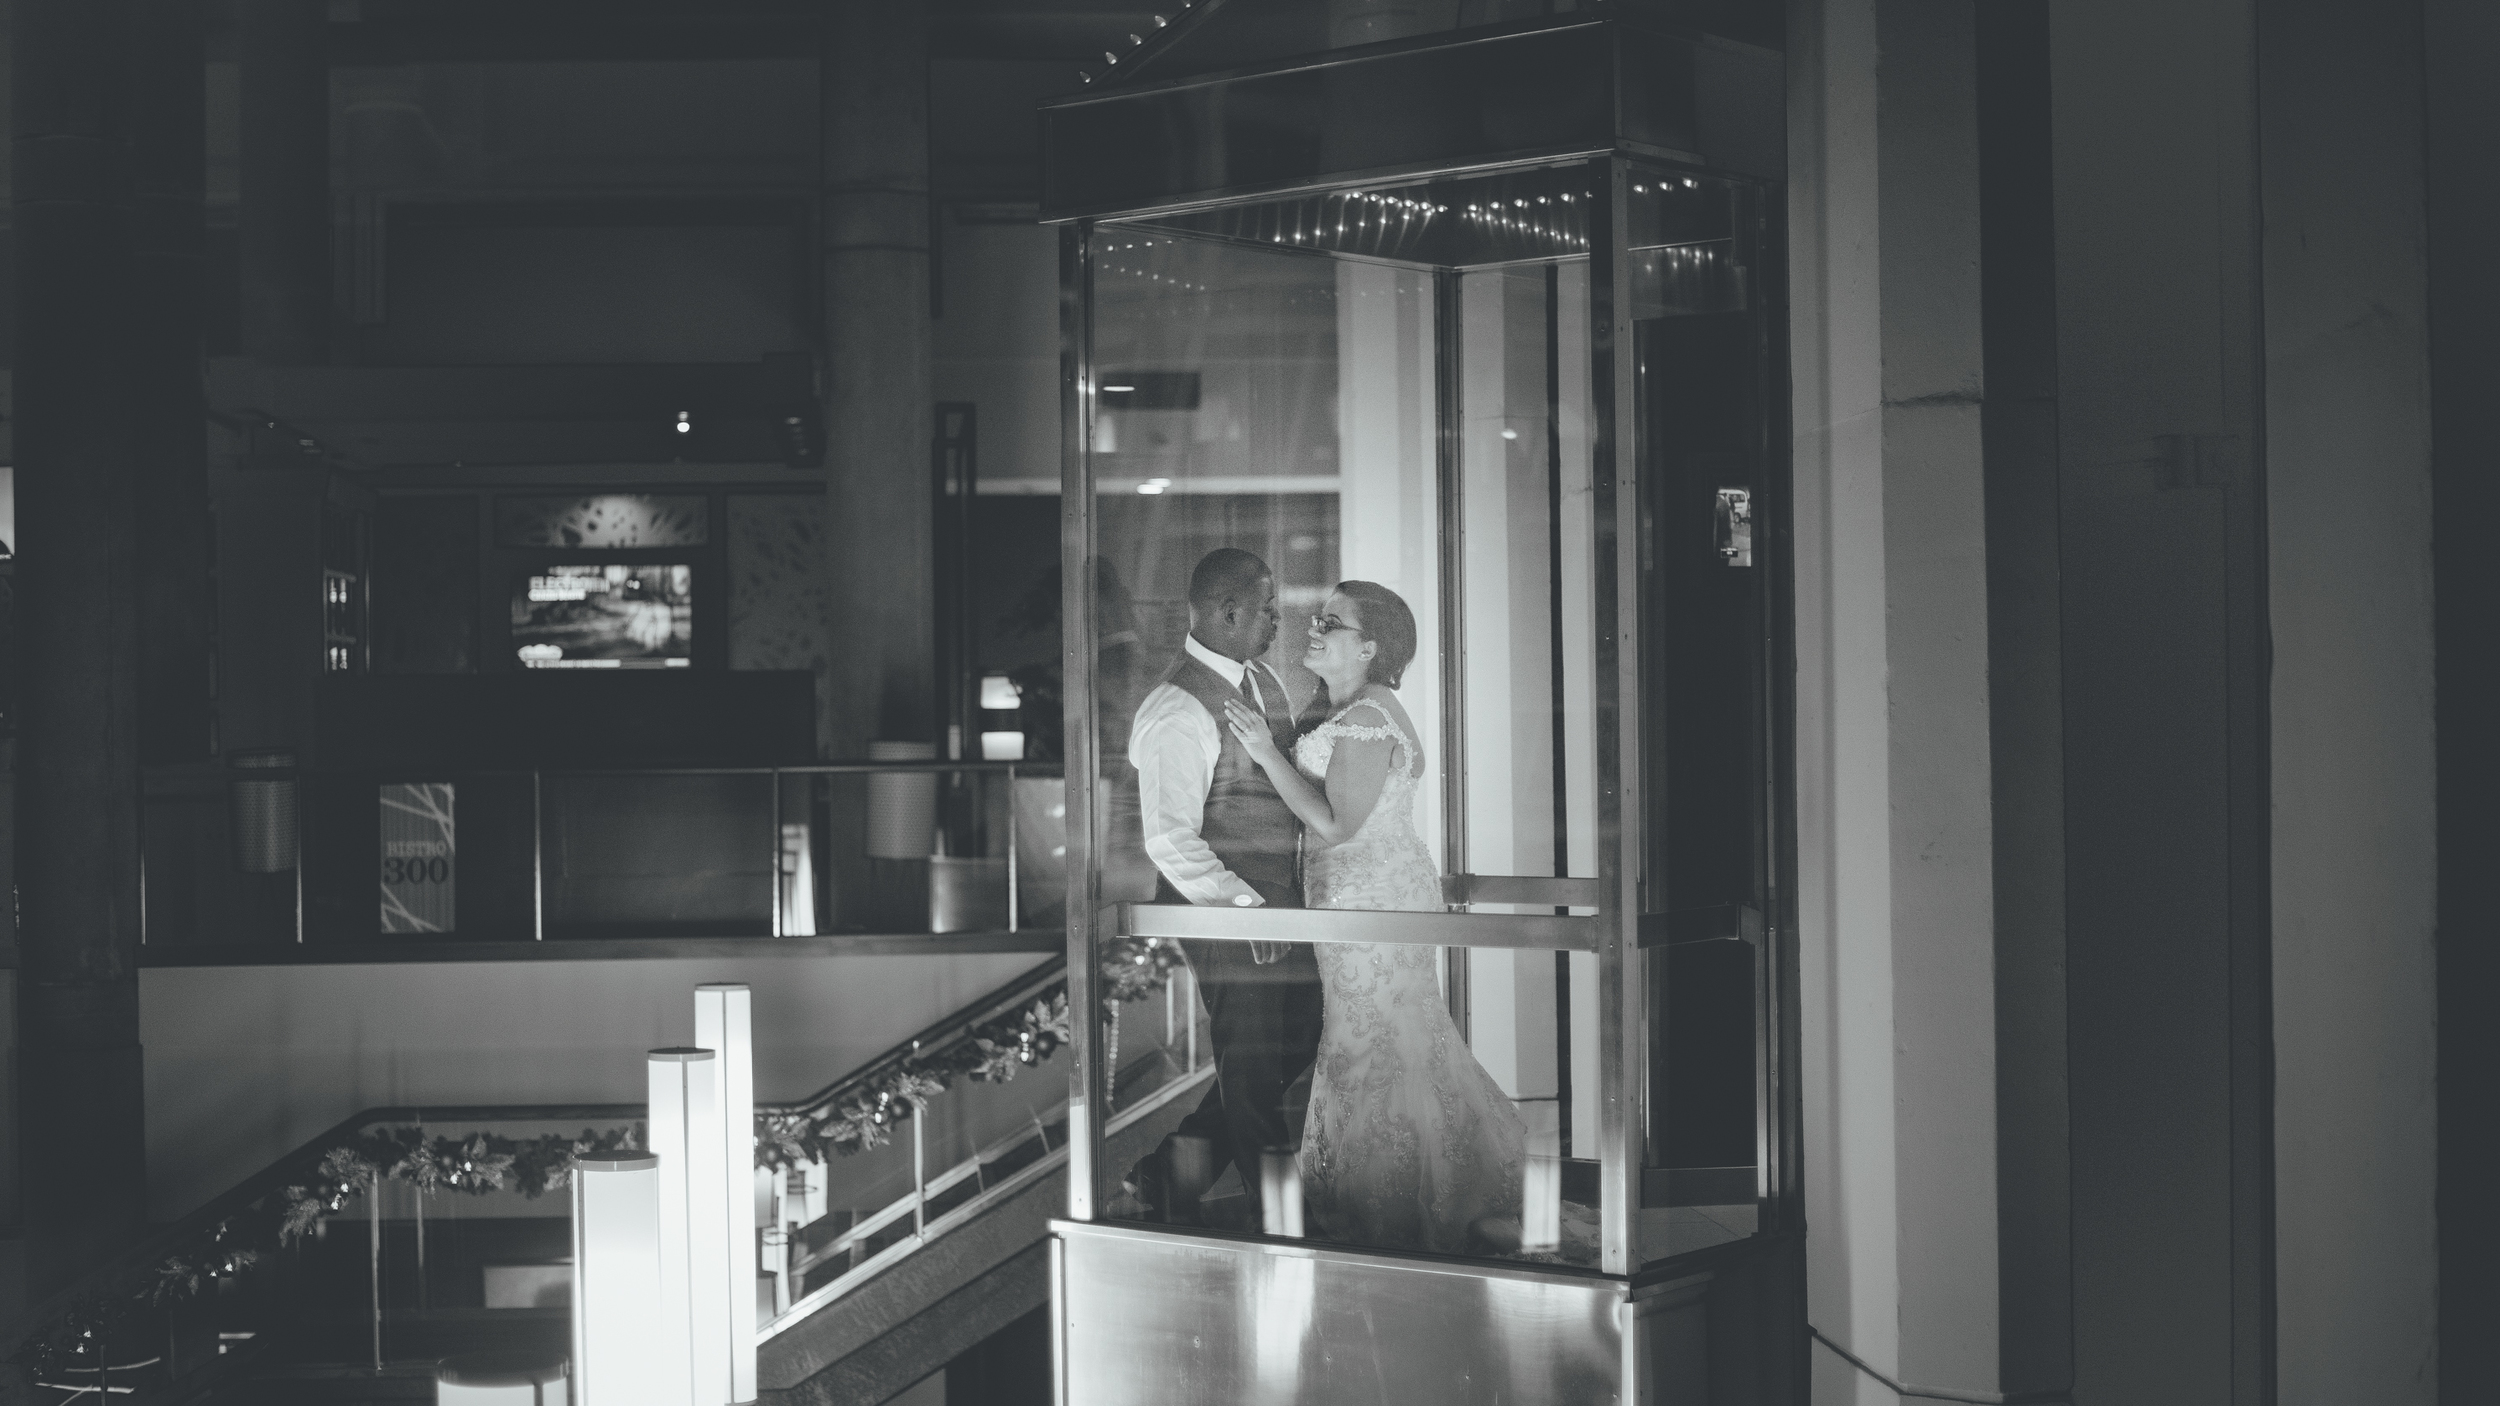 Jasmine and Aaron take a break from dancing to share a moment alone in the Inner Harbor Hyatt's famous all glass elevator....I was there to sneek a photo...or two...